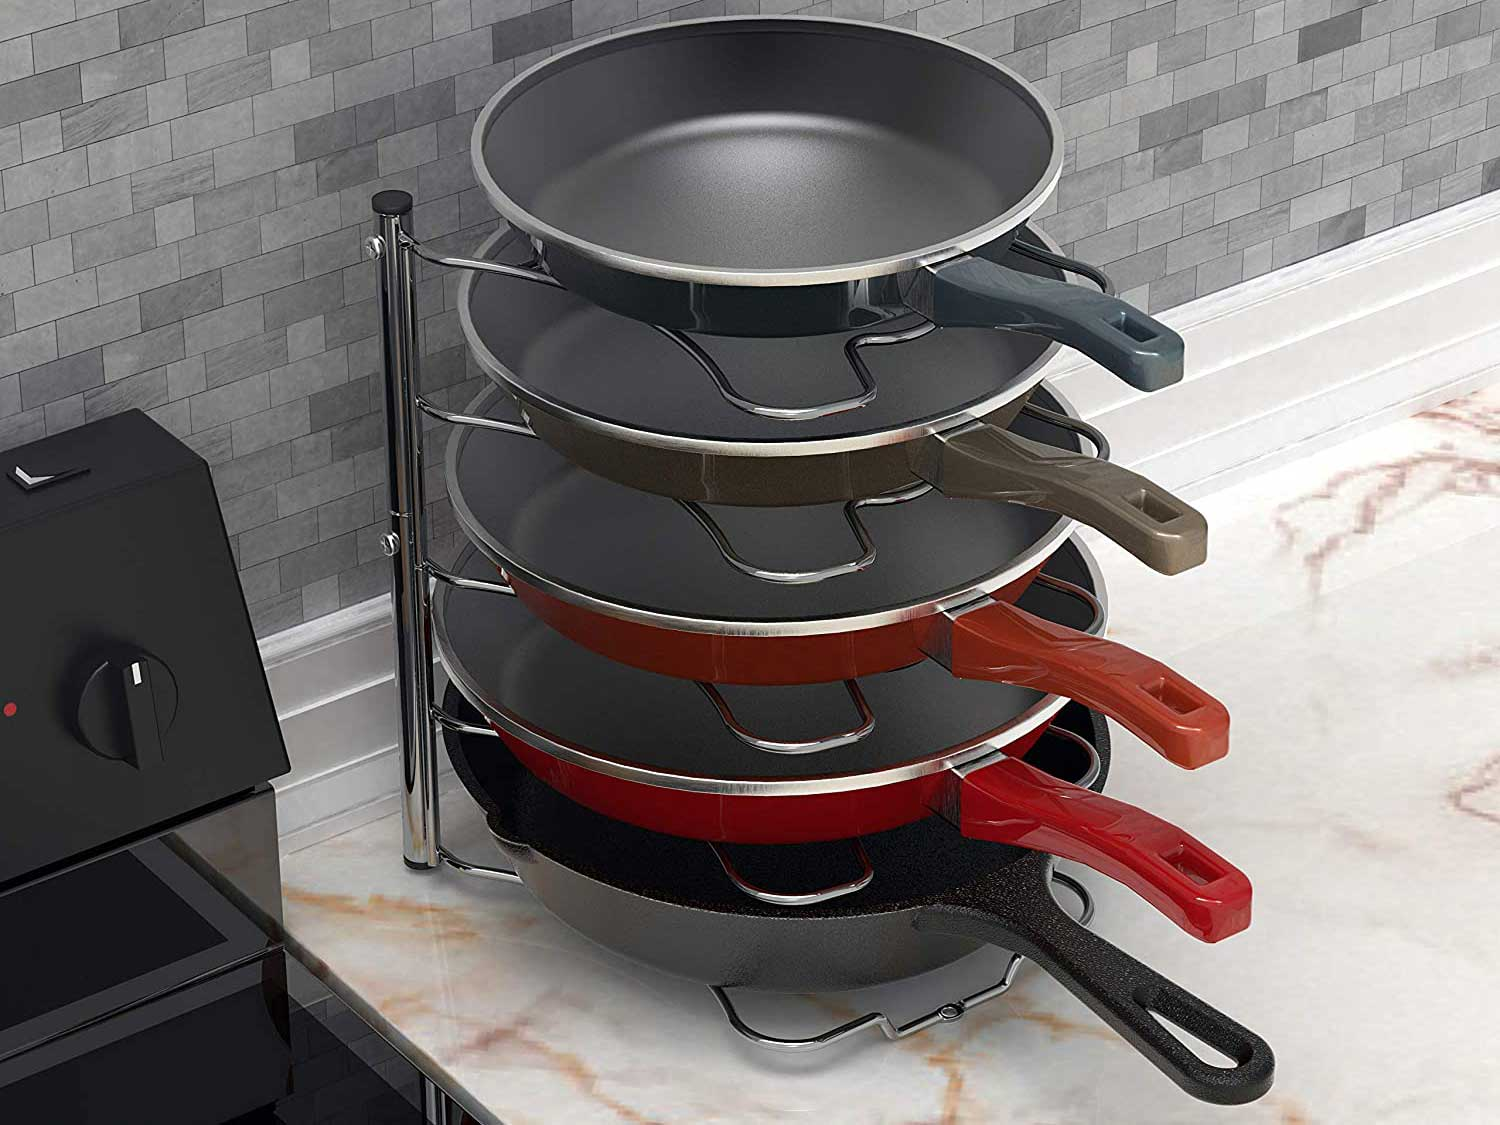 Pot rack with skillets stacked.